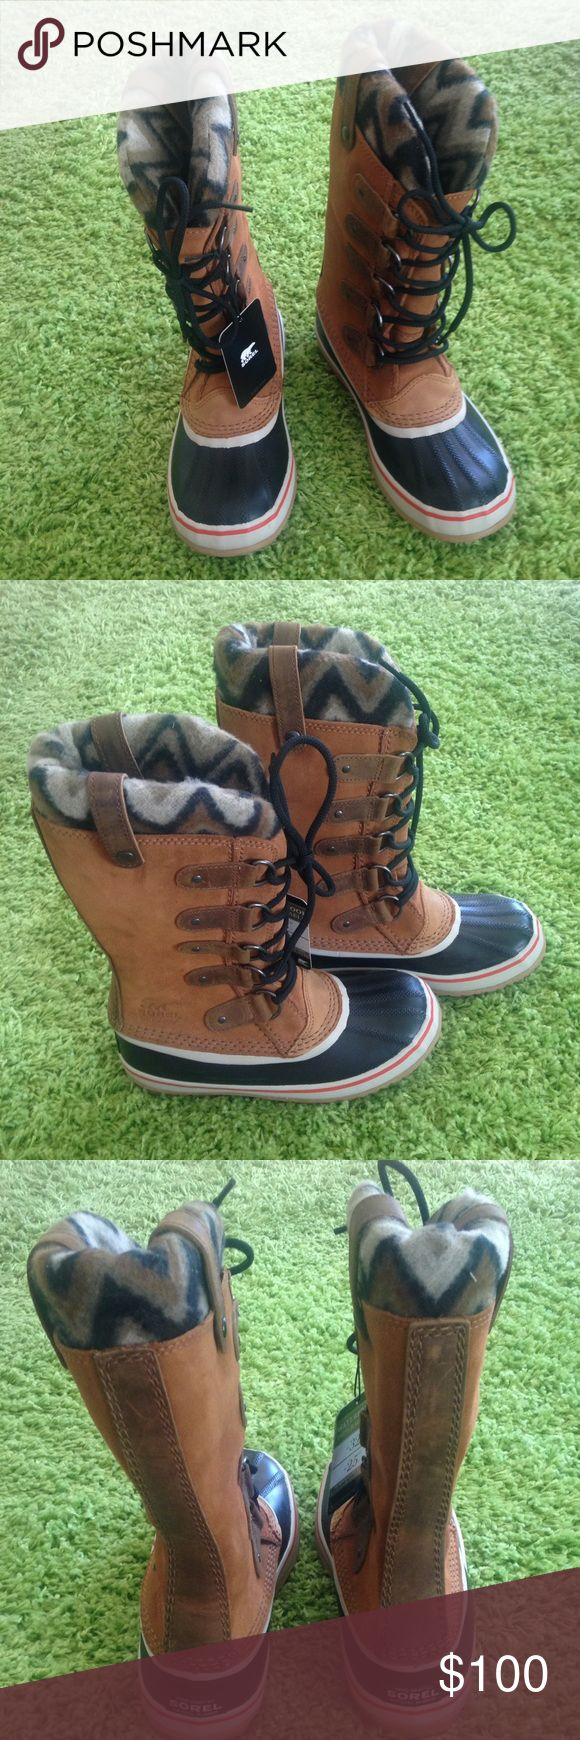 NEW SOREL JOAN OF ARTIC KNIT II WATERPROOF BOOTS. BRAND NEW WOMENS SIZE 7 ELK WATERPROOF SOREL BOOTS. REMOVABLE FLEECE LINED BOOTS. NATURAL RUBBER WITH LEATHER UPPER. DOES NOT COME WITH A BOX. Sorel Shoes Winter & Rain Boots